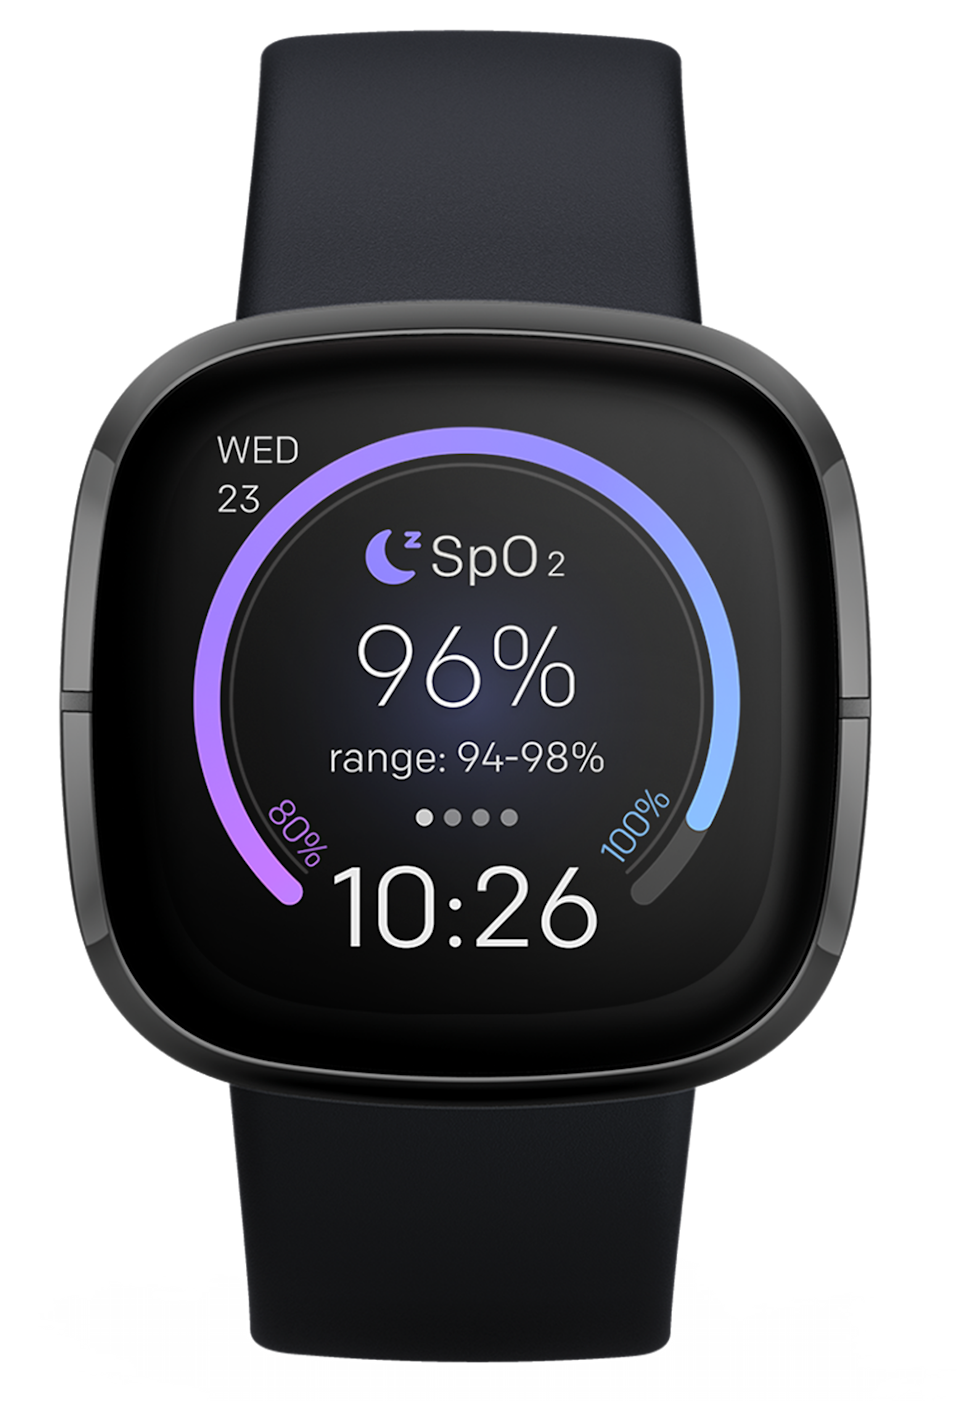 """<h2>Fitbit Sense</h2><br>""""I've tried <a href=""""https://www.refinery29.com/en-us/best-wearable-technology-reviews"""" rel=""""nofollow noopener"""" target=""""_blank"""" data-ylk=""""slk:several fitness tracking devices"""" class=""""link rapid-noclick-resp"""">several fitness tracking devices</a>, but I always end up coming home to my Fitbit. The latest iteration of their smartwatch has a battery that lasts for at least six days (6, count 'em!). It tracks far more than just your steps and sleep. The theme of the newest watch is stress — something we could all be more mindful of during pandemic times. One of the coolest new features is the <a href=""""https://investor.fitbit.com/press/press-releases/press-release-details/2020/Fitbit-Debuts-Sense-Its-Most-Advanced-Health-Smartwatch-Worlds-First-With-EDA-Sensor-for-Stress-Management-Plus-ECG-App-SpO2-and-Skin-Temperature-Sensors/default.aspx"""" rel=""""nofollow noopener"""" target=""""_blank"""" data-ylk=""""slk:electrodermal activity (EDA) sensor"""" class=""""link rapid-noclick-resp"""">electrodermal activity (EDA) sensor</a>, which helps you track your body's response to stress and prompts you to do two minute mindfulness sessions, or full on guided meditations from the app. Your watch will also give you a daily 'stress score' based on factors such as your heart rate, skin temperature, and sleep. I find the data interesting, and take it as a friendly reminder to pause and take a few deep breaths during busy days."""" — <em>Molly Longman, health writer </em><br><br><strong>Fitbit</strong> Fitbit Sense, $, available at <a href=""""https://go.skimresources.com/?id=30283X879131&url=https%3A%2F%2Fwww.fitbit.com%2Fglobal%2Fus%2Fproducts%2Fsmartwatches%2Fsense"""" rel=""""nofollow noopener"""" target=""""_blank"""" data-ylk=""""slk:Fitbit"""" class=""""link rapid-noclick-resp"""">Fitbit</a>"""